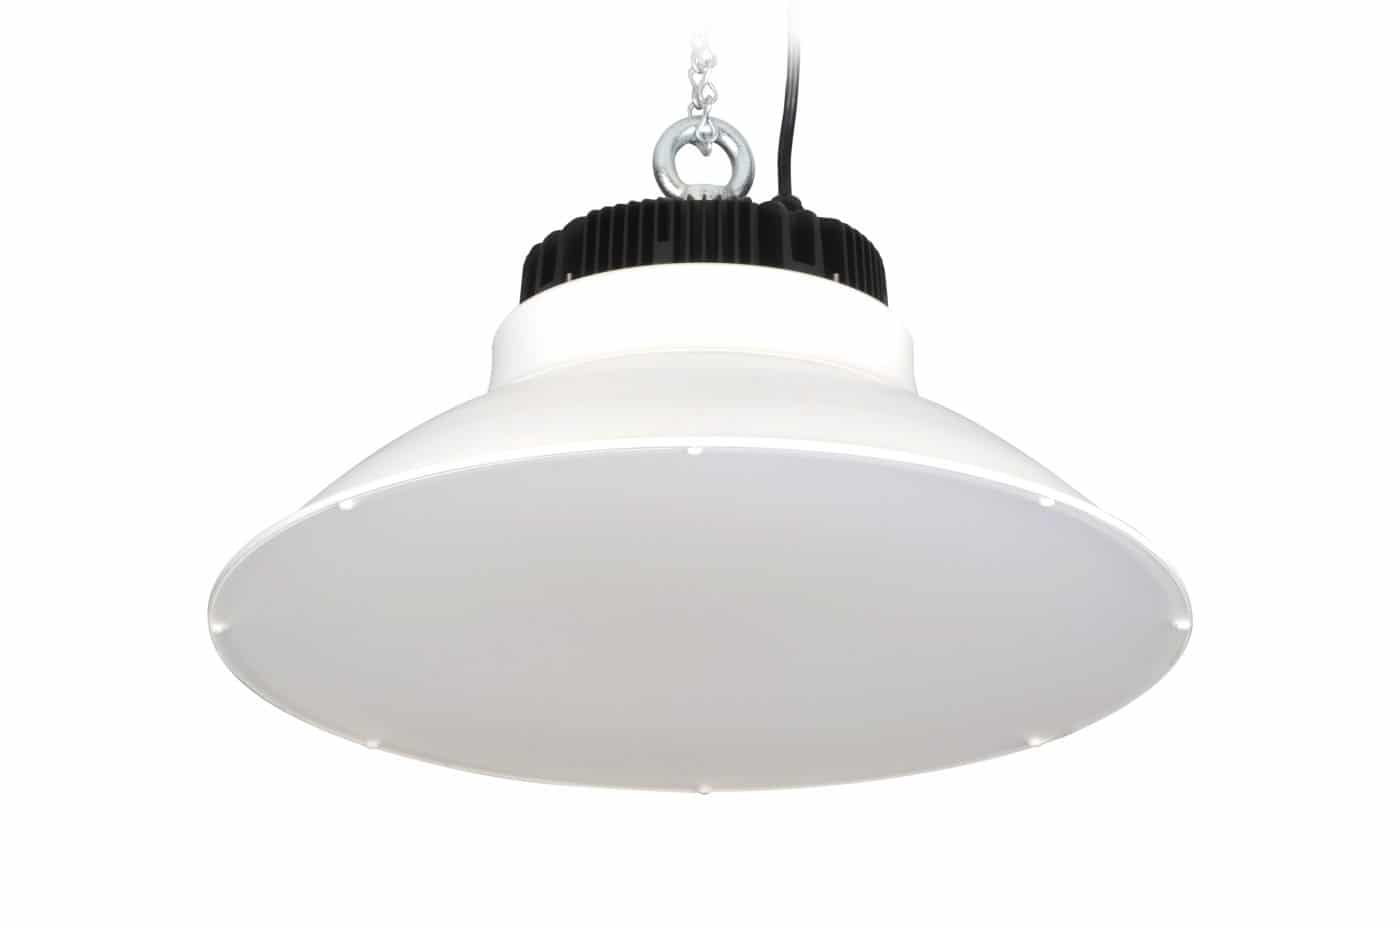 145 Watt Silescent Lighting High Bay LED Lighting Fixture, Reflective